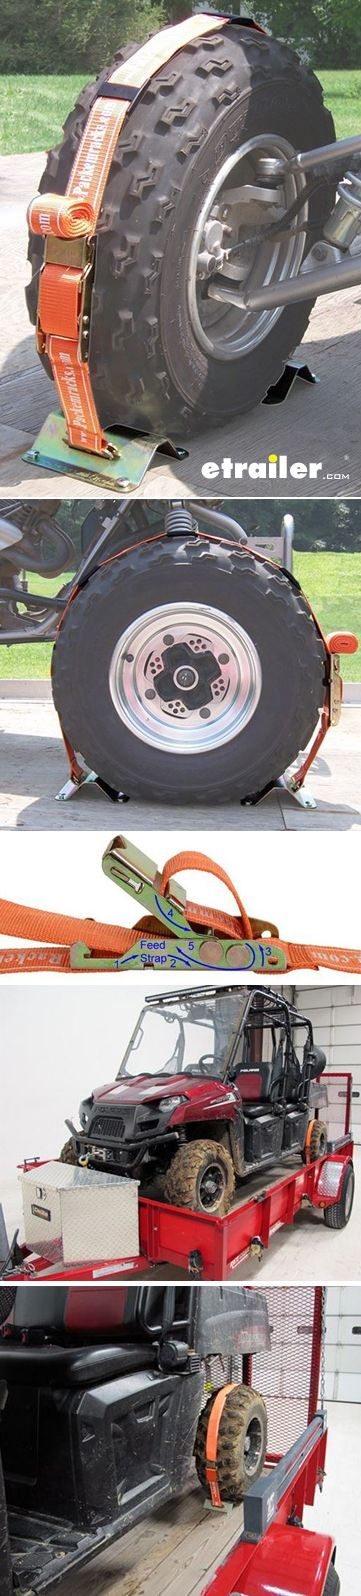 This wheel tie-down kit can keep your ATVs, equipment, mowers and more from rolling during transit.  The two steel stops and polyester strap hold one tire firmly to your truck bed or trailer deck.